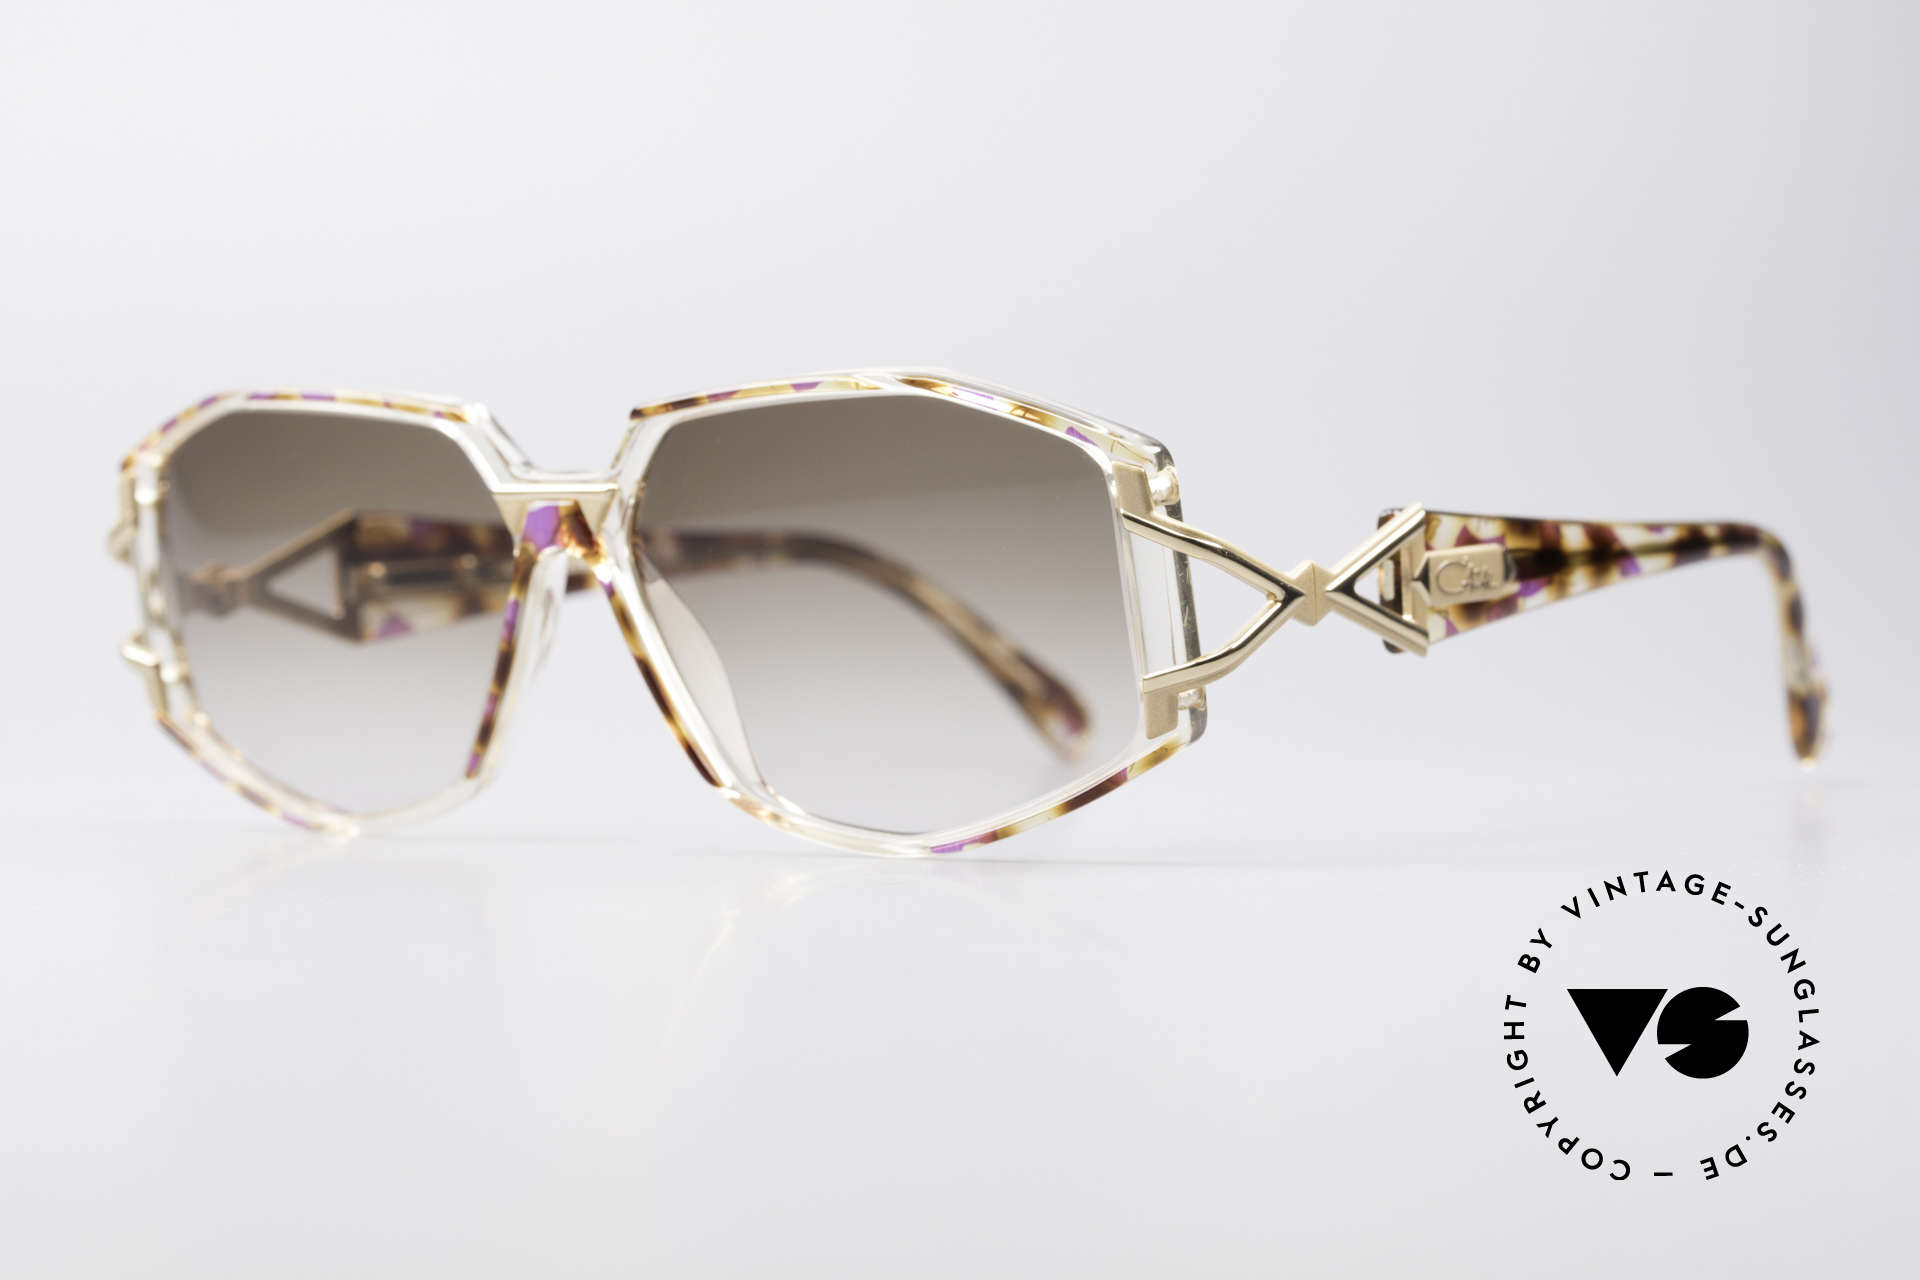 Cazal 368 Designer Shades Hip Hop Style, top-notch crafting & great durability; made in Germany, Made for Women